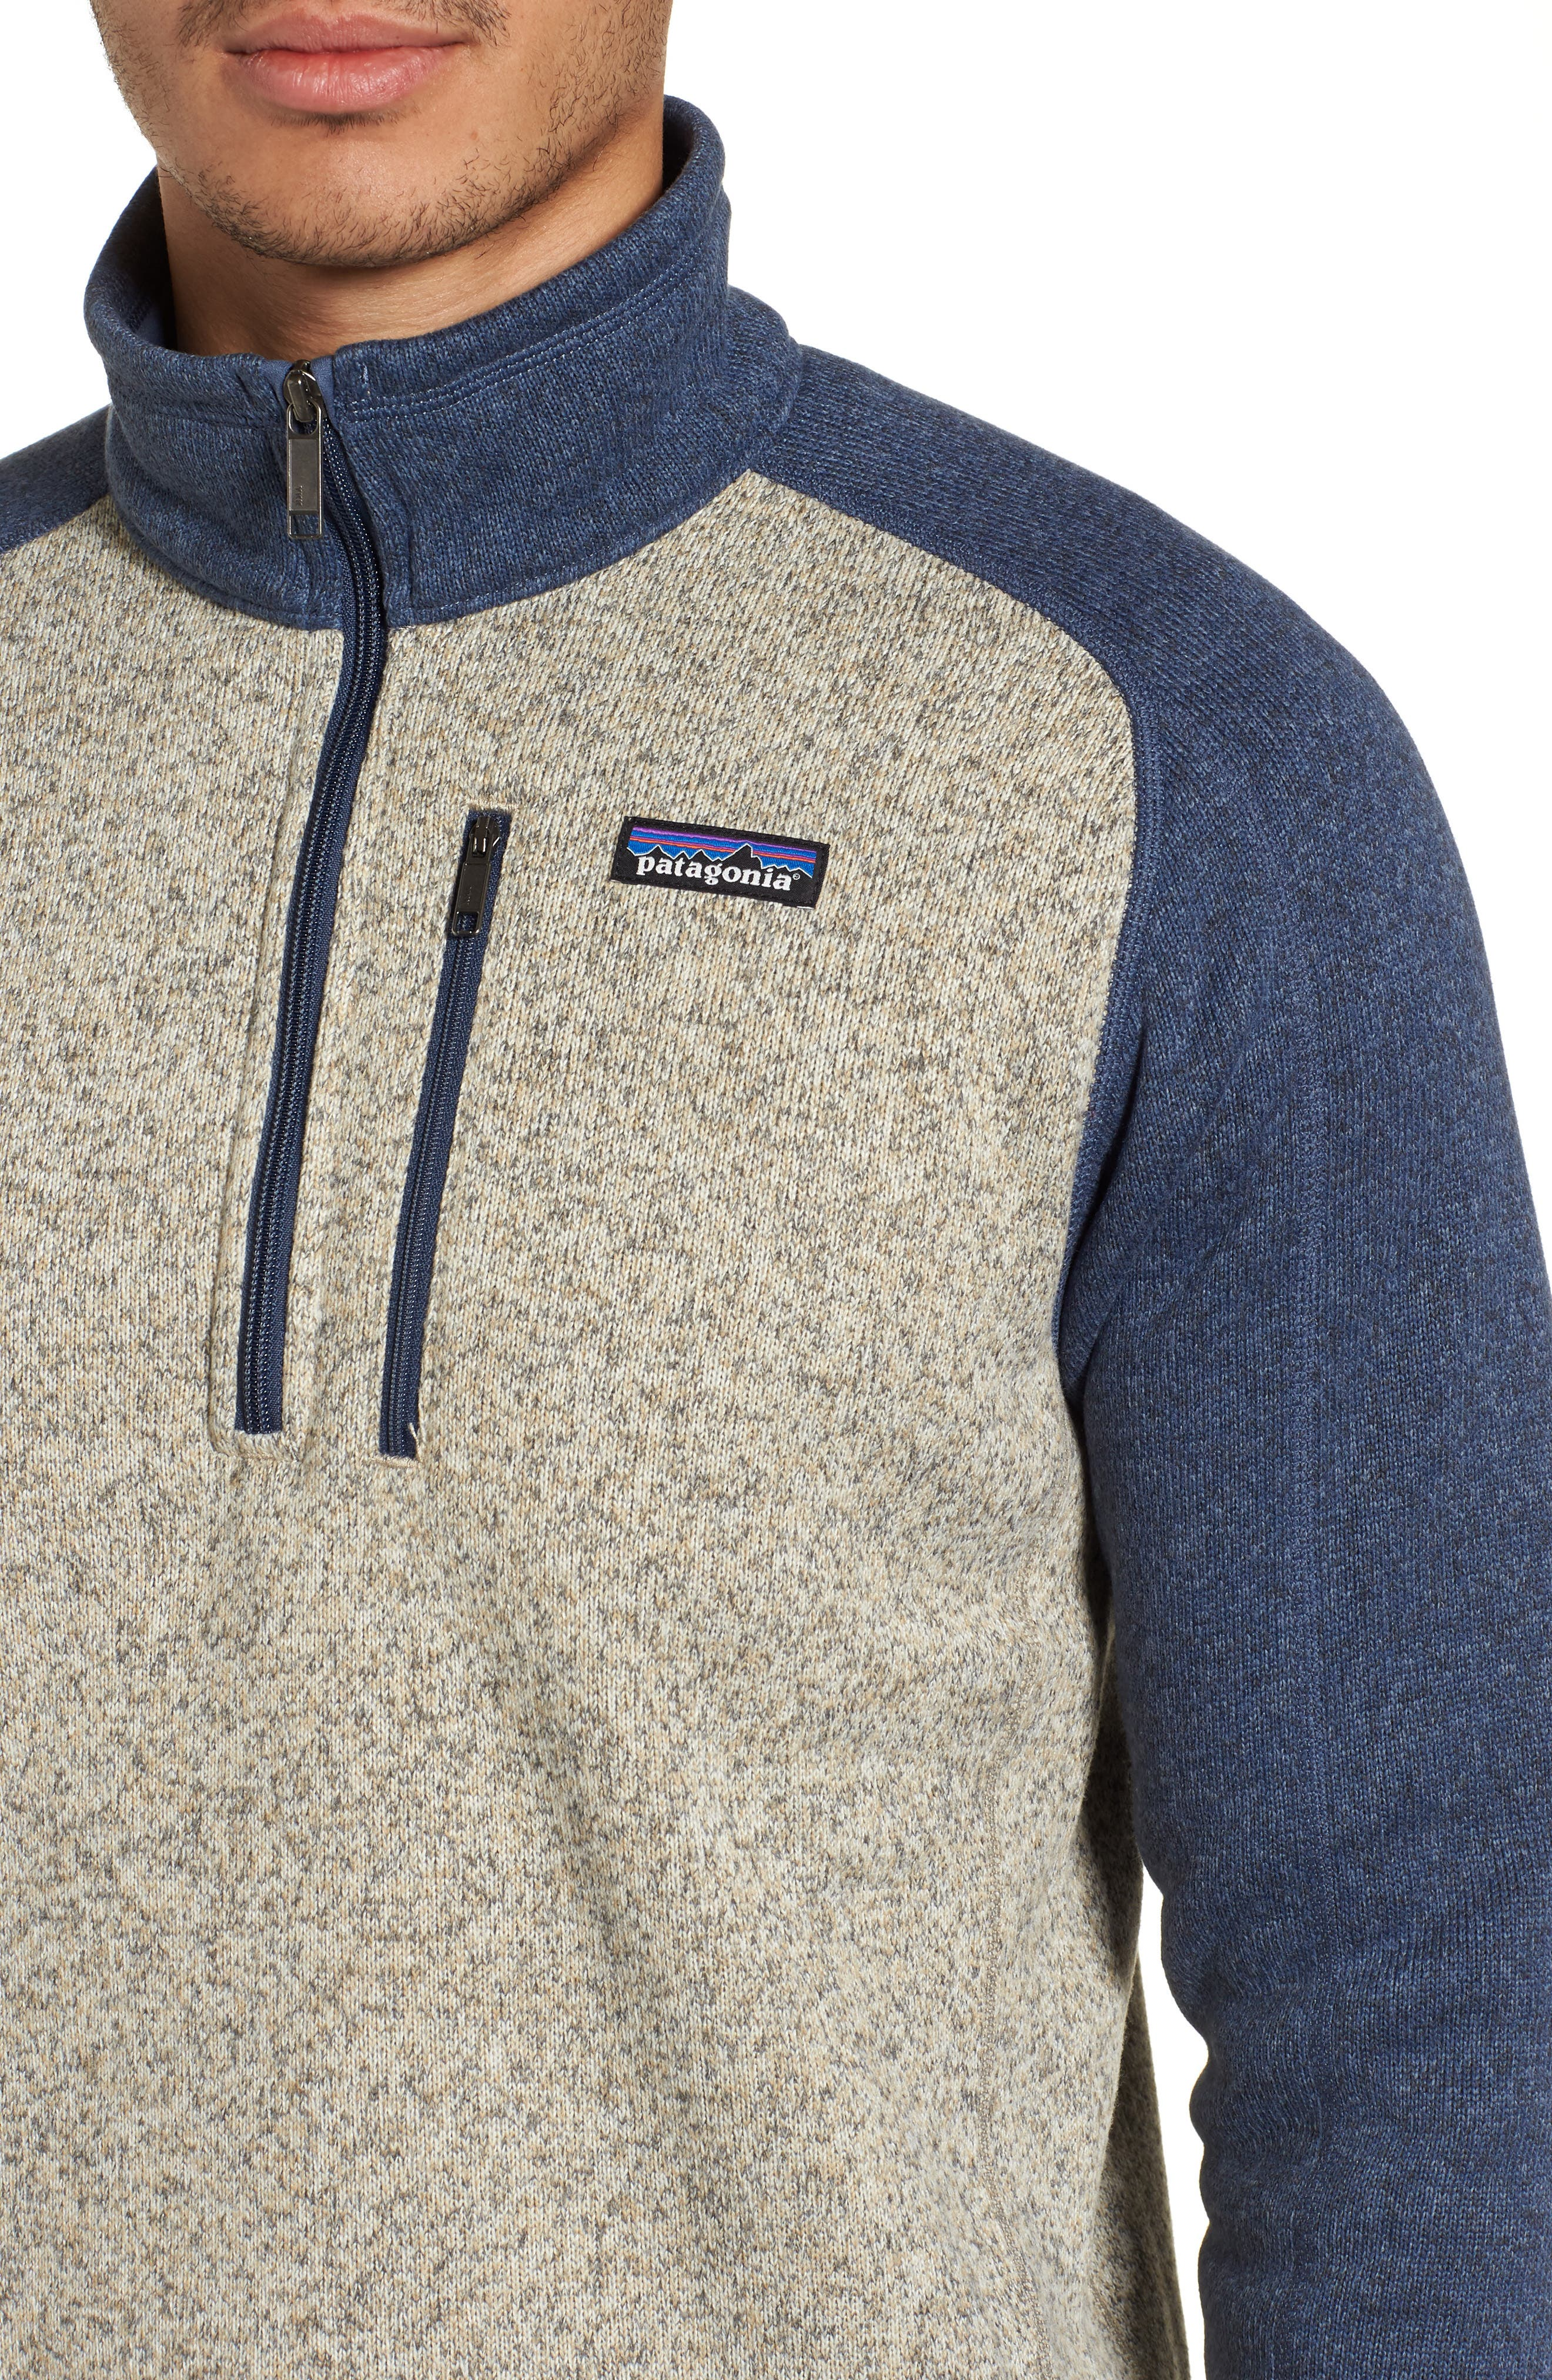 PATAGONIA, Better Sweater Quarter Zip Pullover, Alternate thumbnail 5, color, BLEACHED STONE W/DOLOMITE BLUE